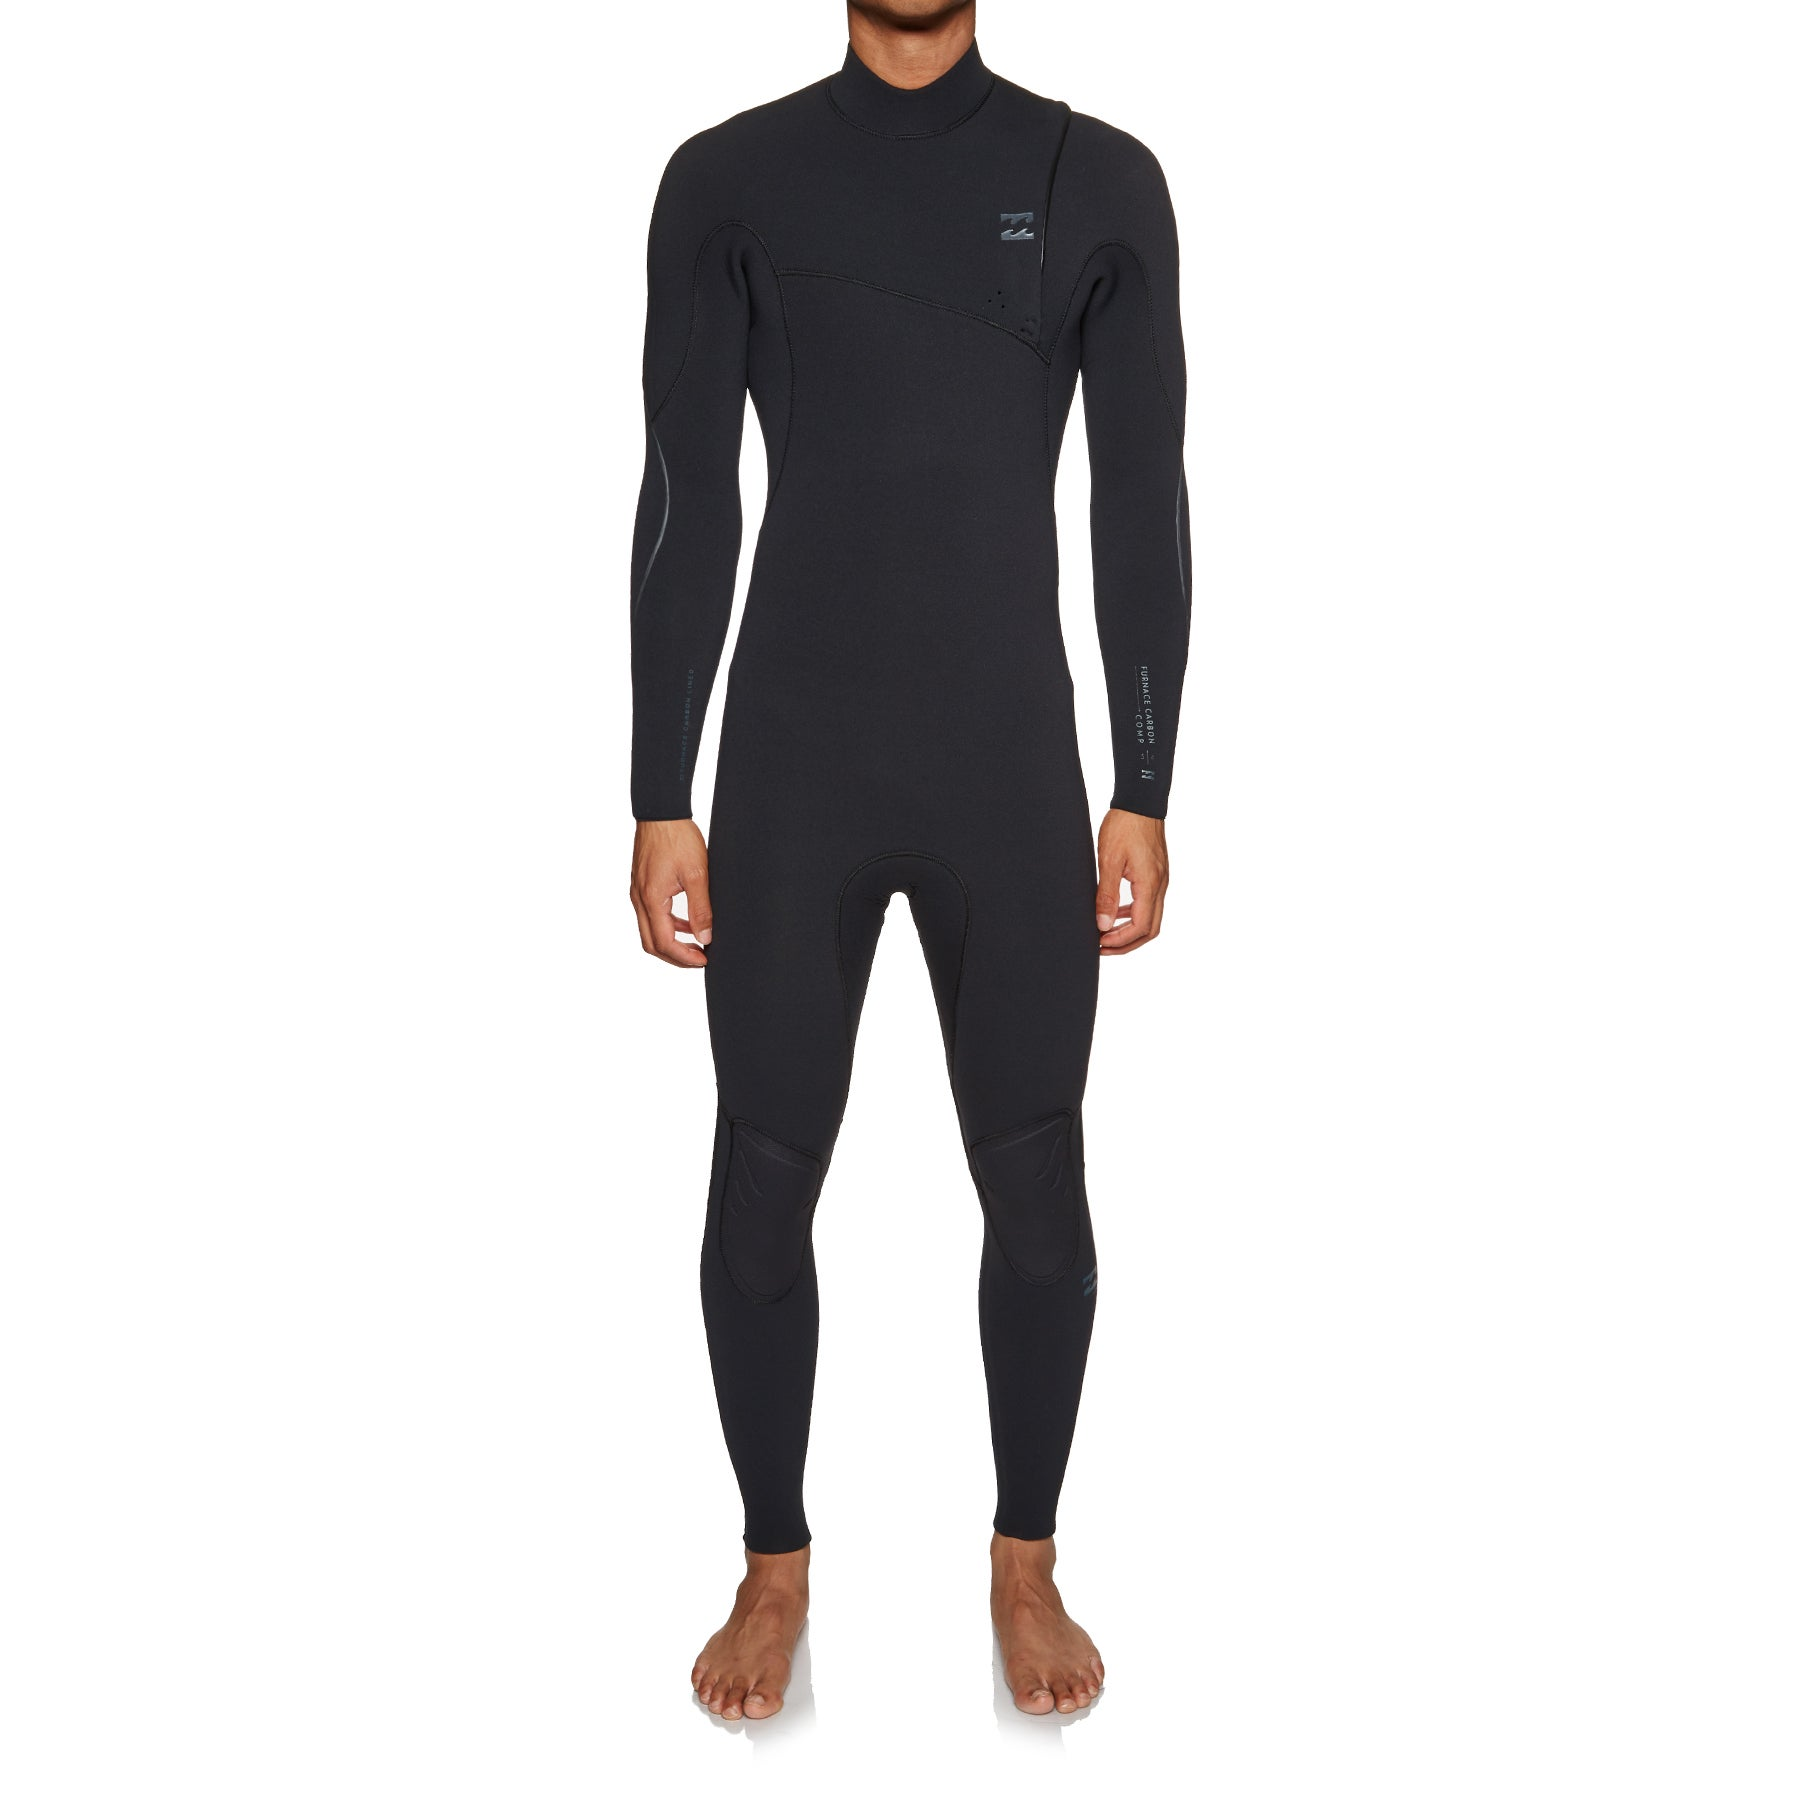 Billabong Furnace Carbon Comp 5/4mm 2019 Zipperless Wetsuit